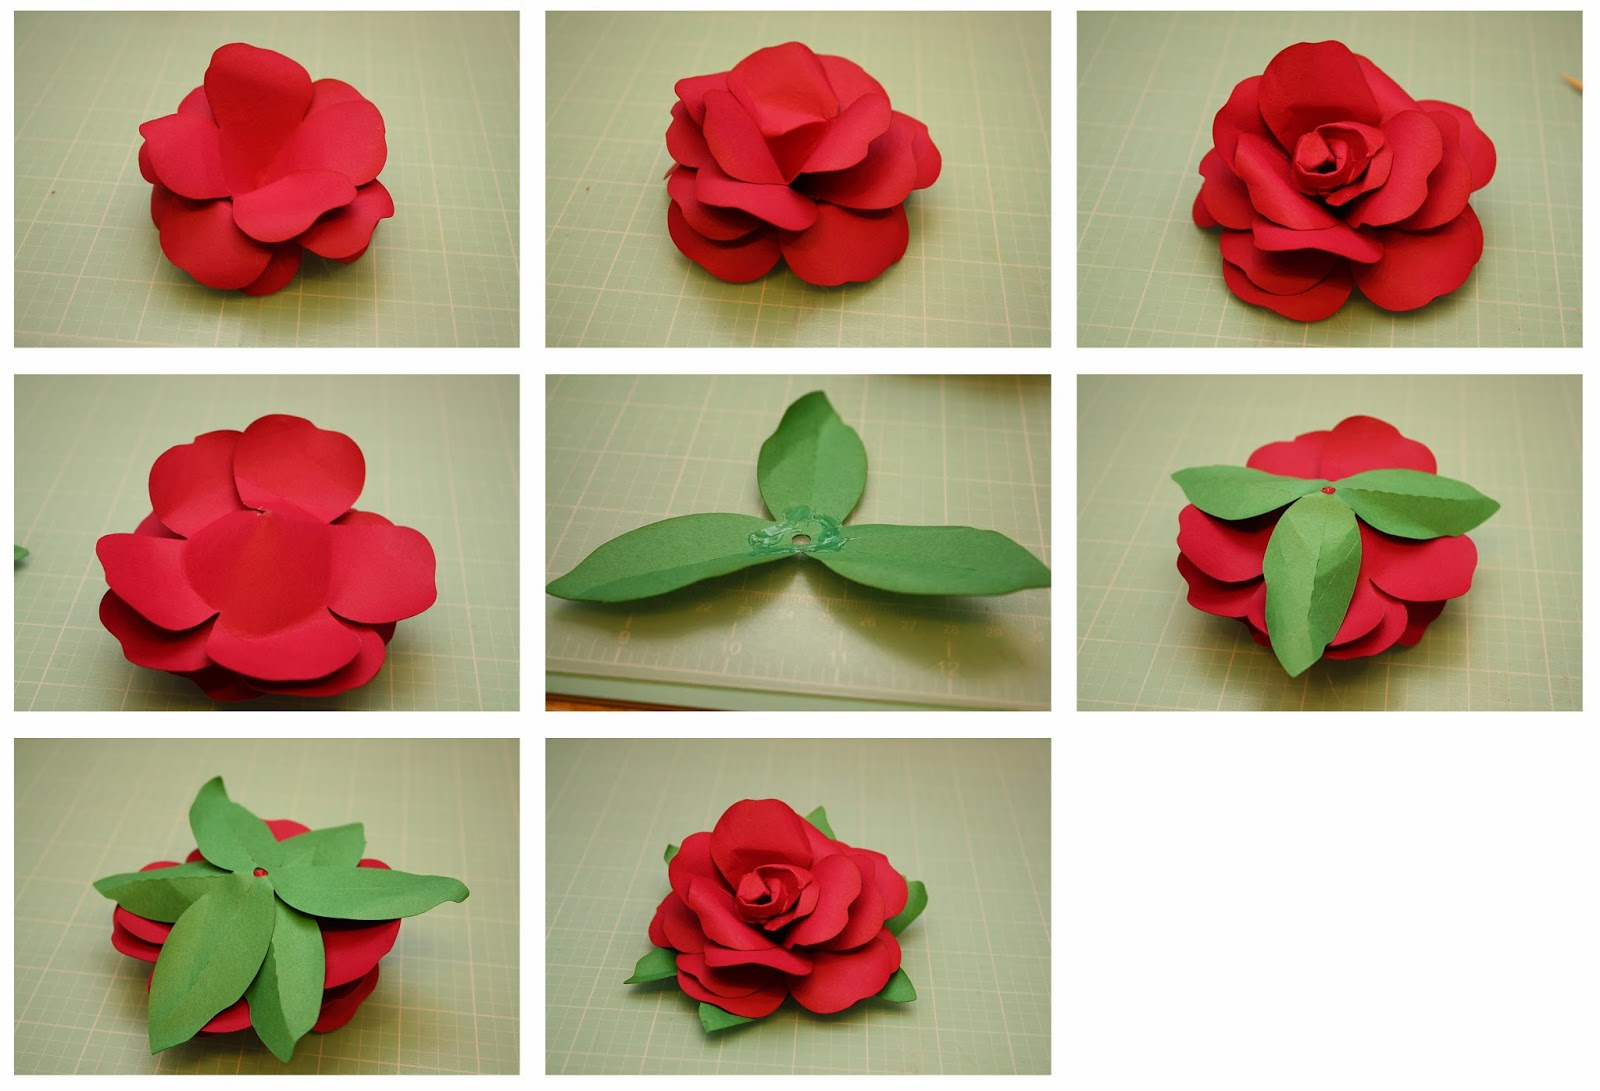 Bits of paper rolled rose and easy to assemble rose 3d paper flowers tuesday february 25 2014 mightylinksfo